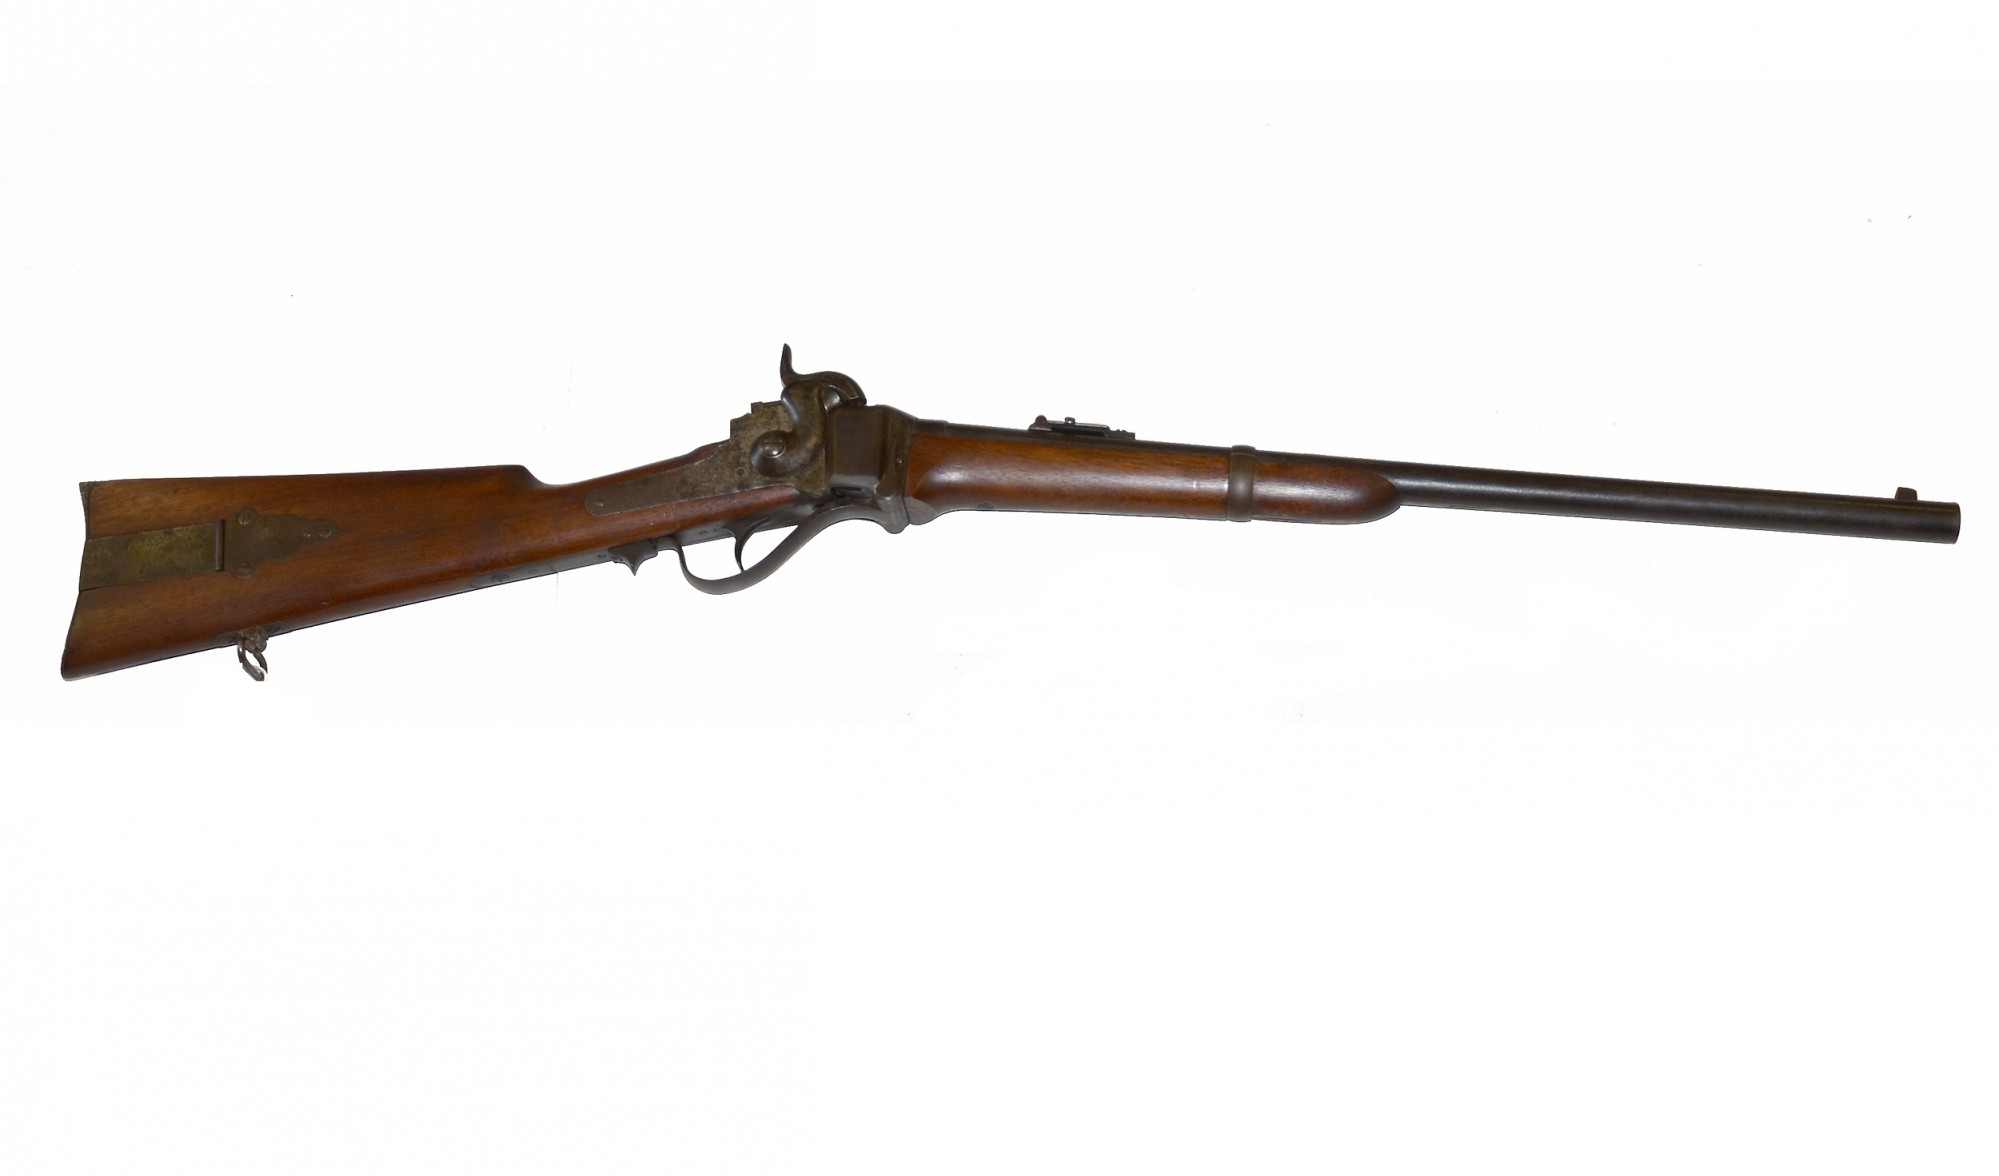 NAVY CONTRACT SHARPS NEW MODEL 1859 CARBINE WITH IRON FURNITURE